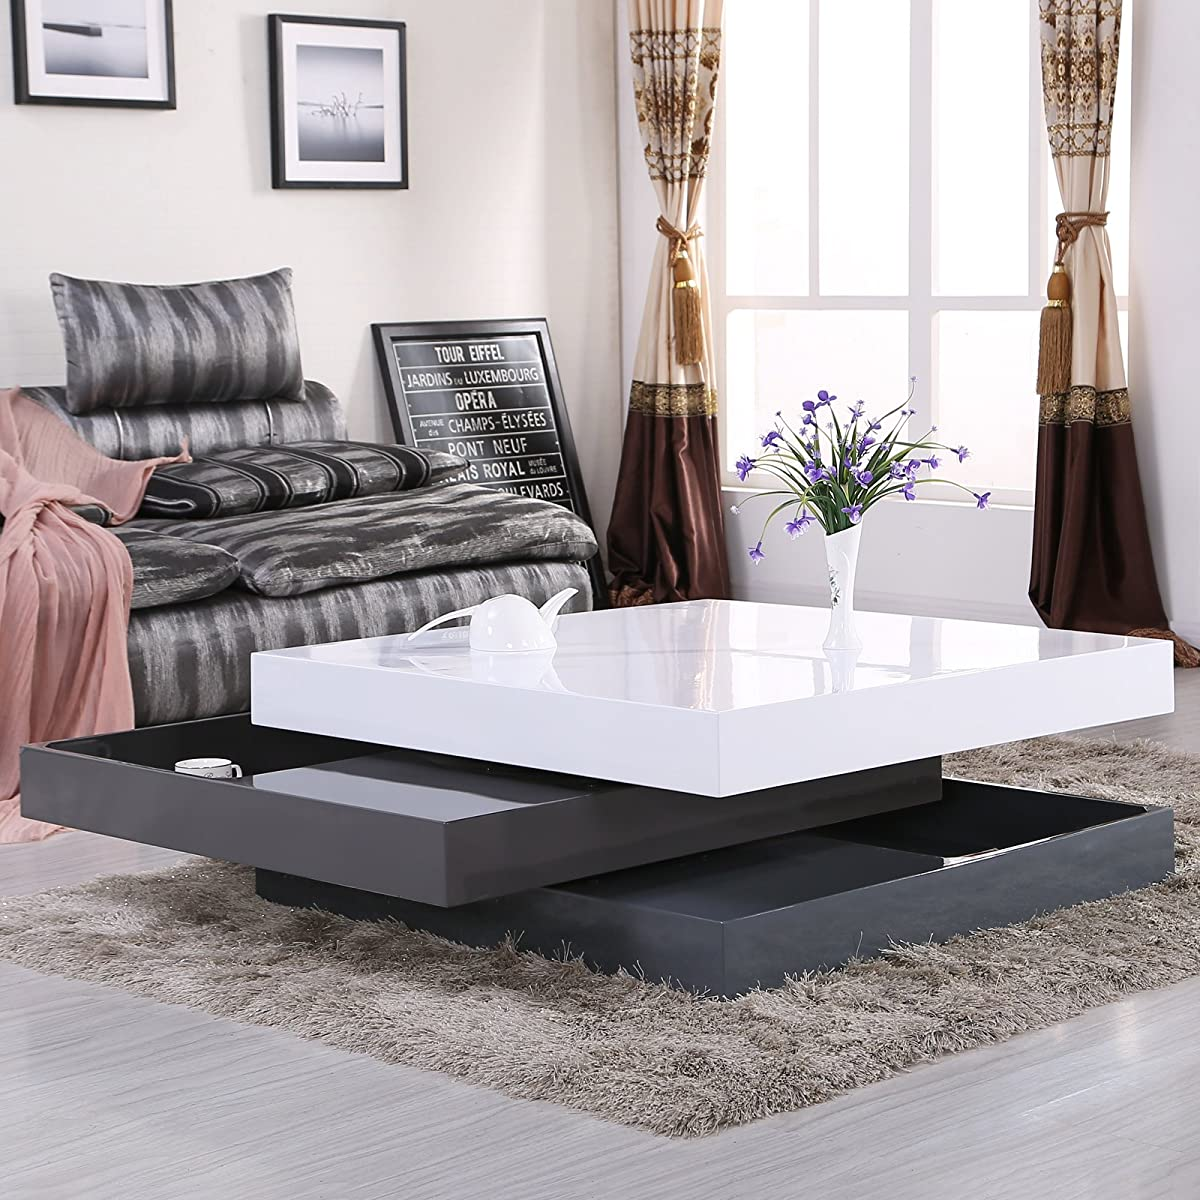 Oval Rotating Coffee Table: Uenjoy High Gloss Square Storage Rotating Coffee Table W/3